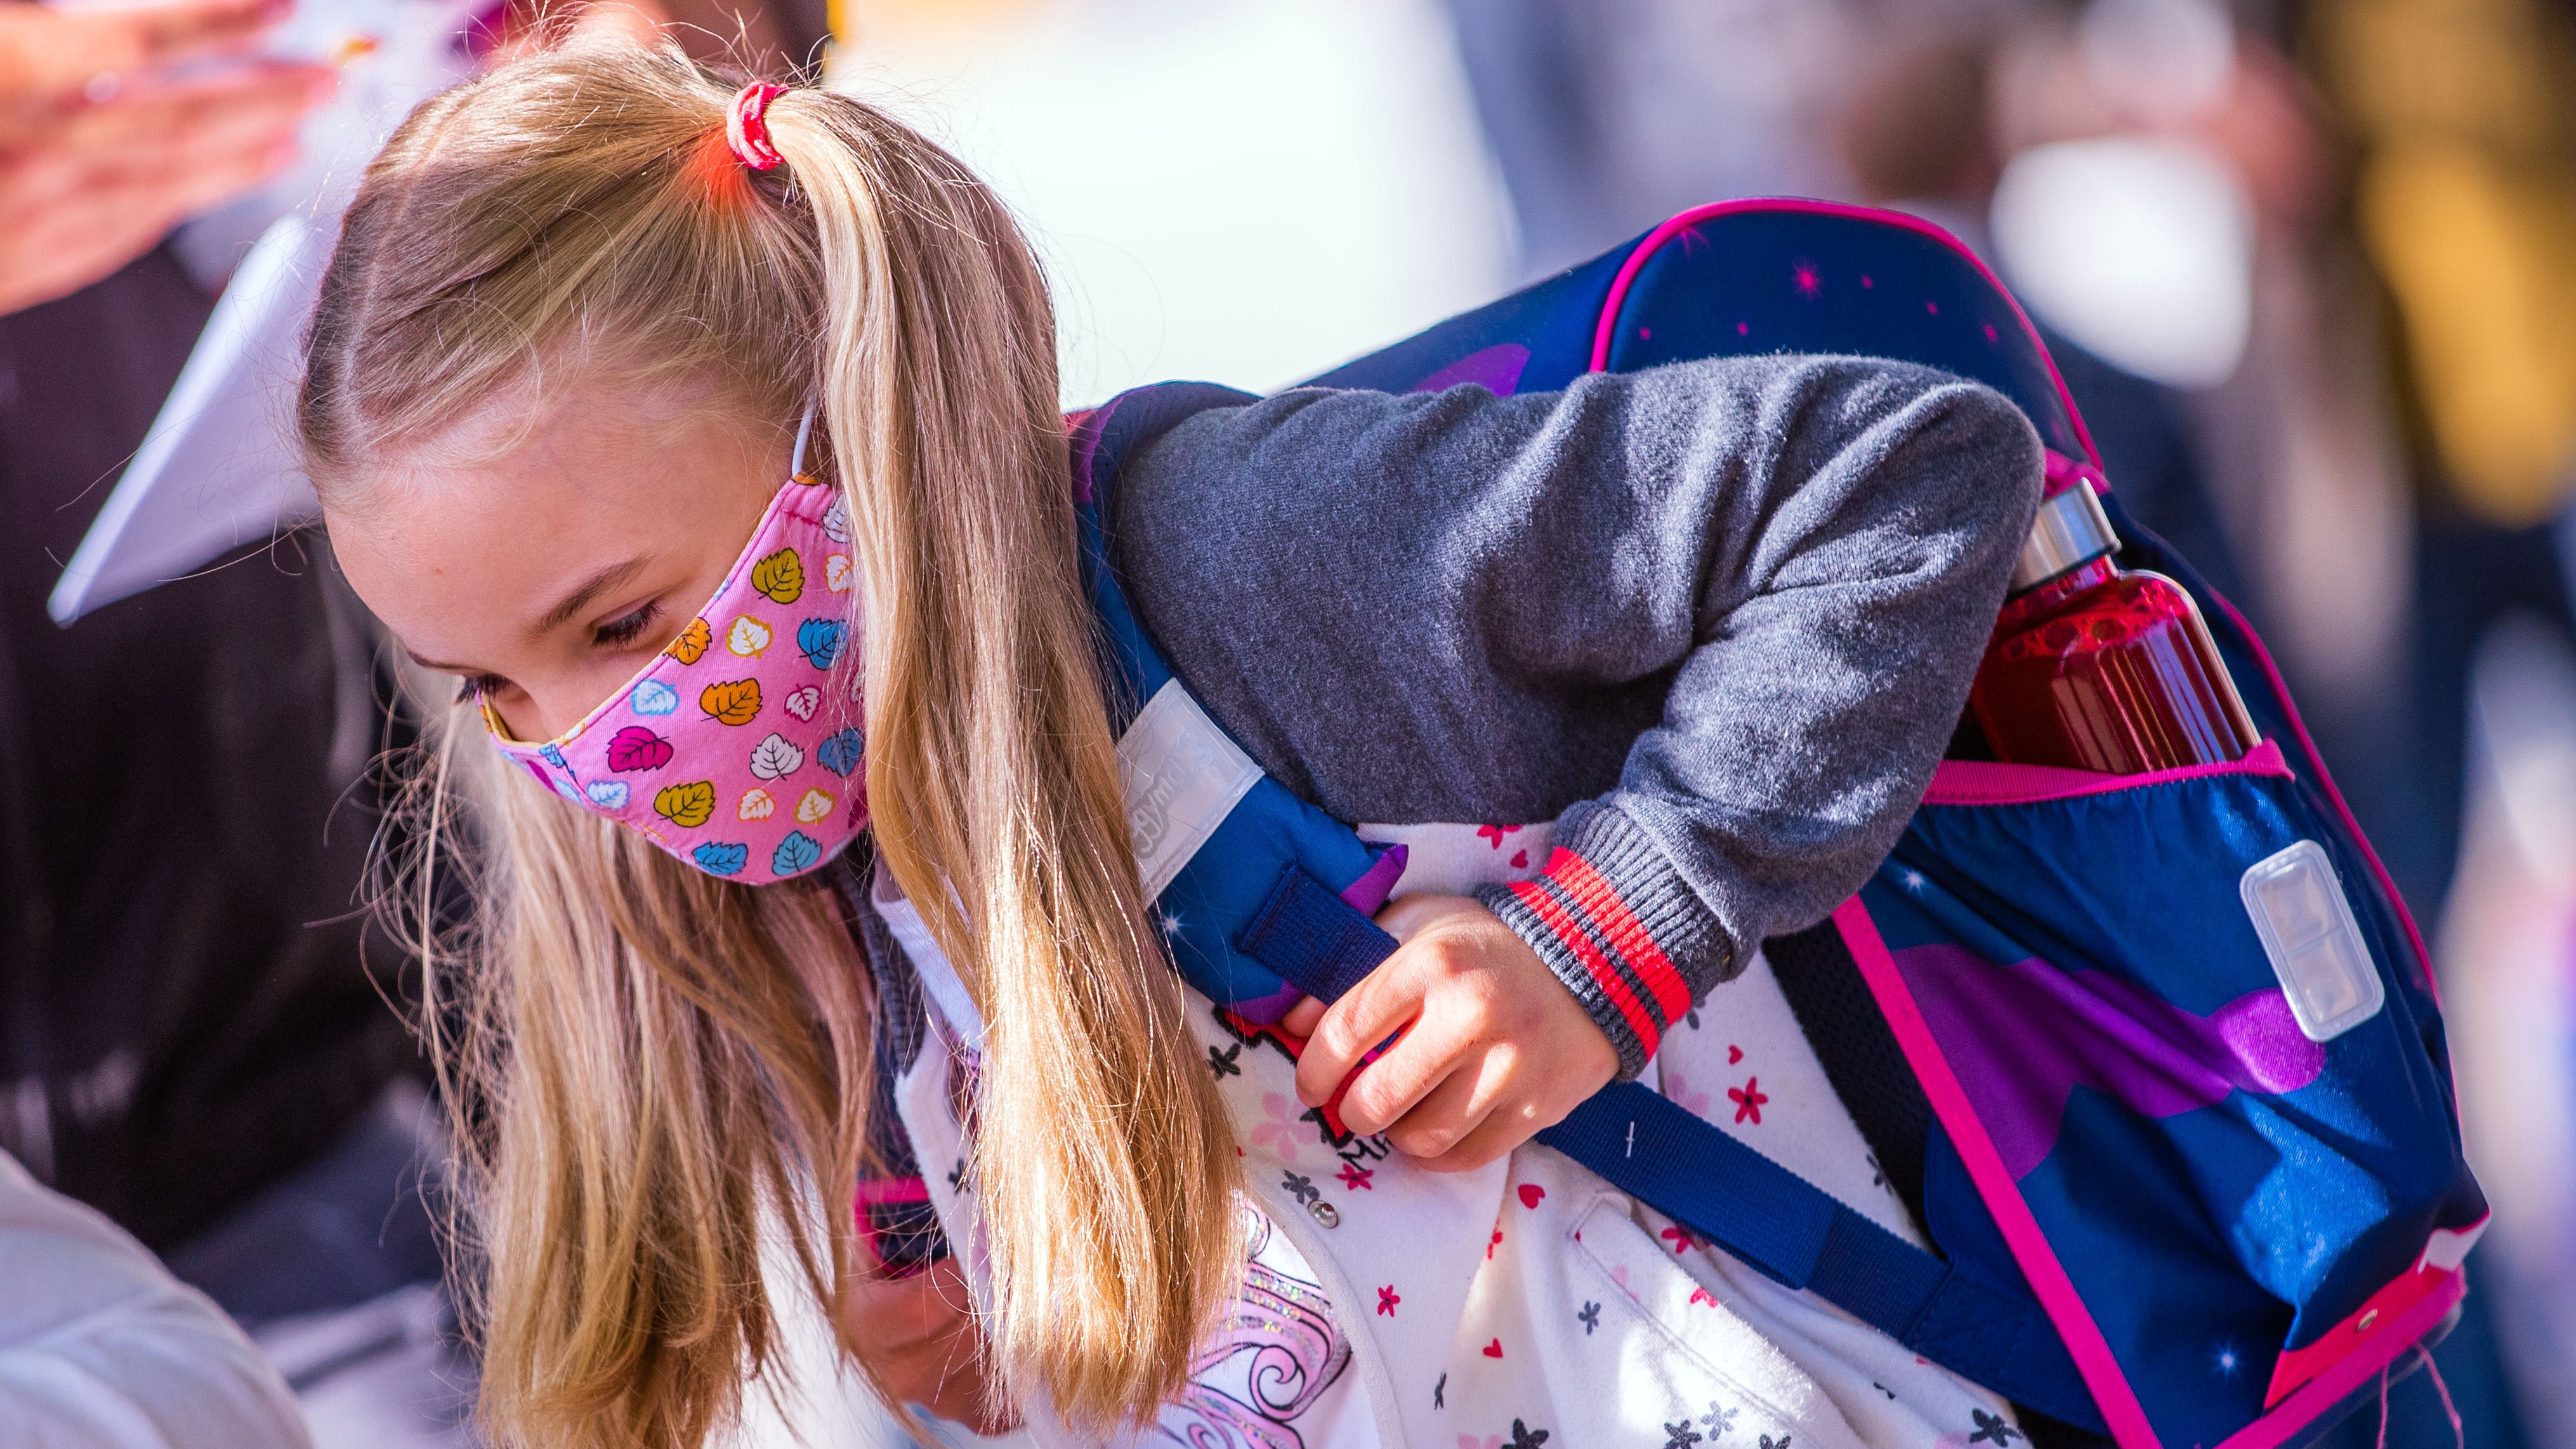 Primary school makes face masks mandatory for pupils | This Morning